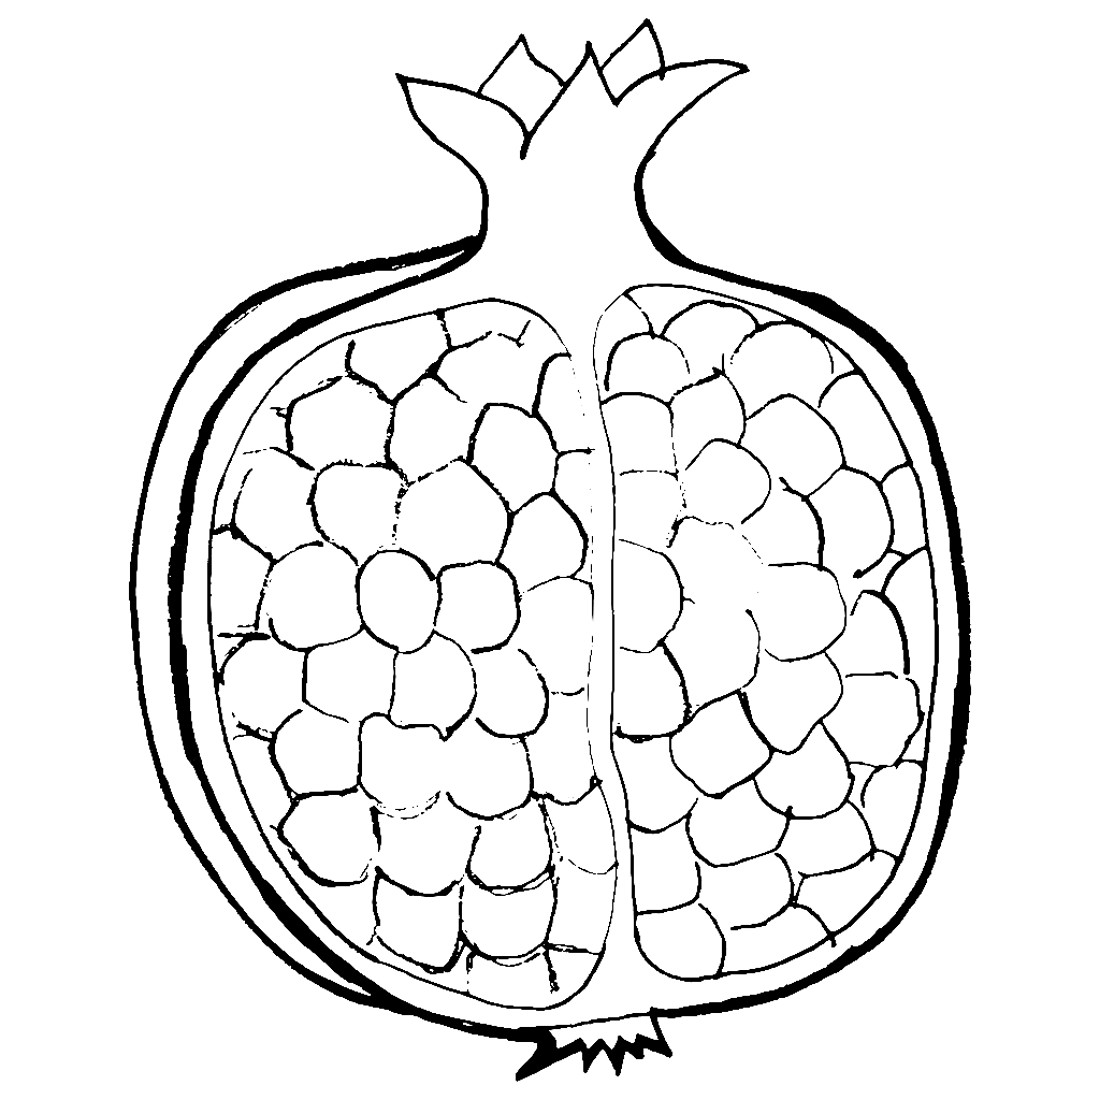 Garnet Fruit Coloring Pages To Download And Print For Free